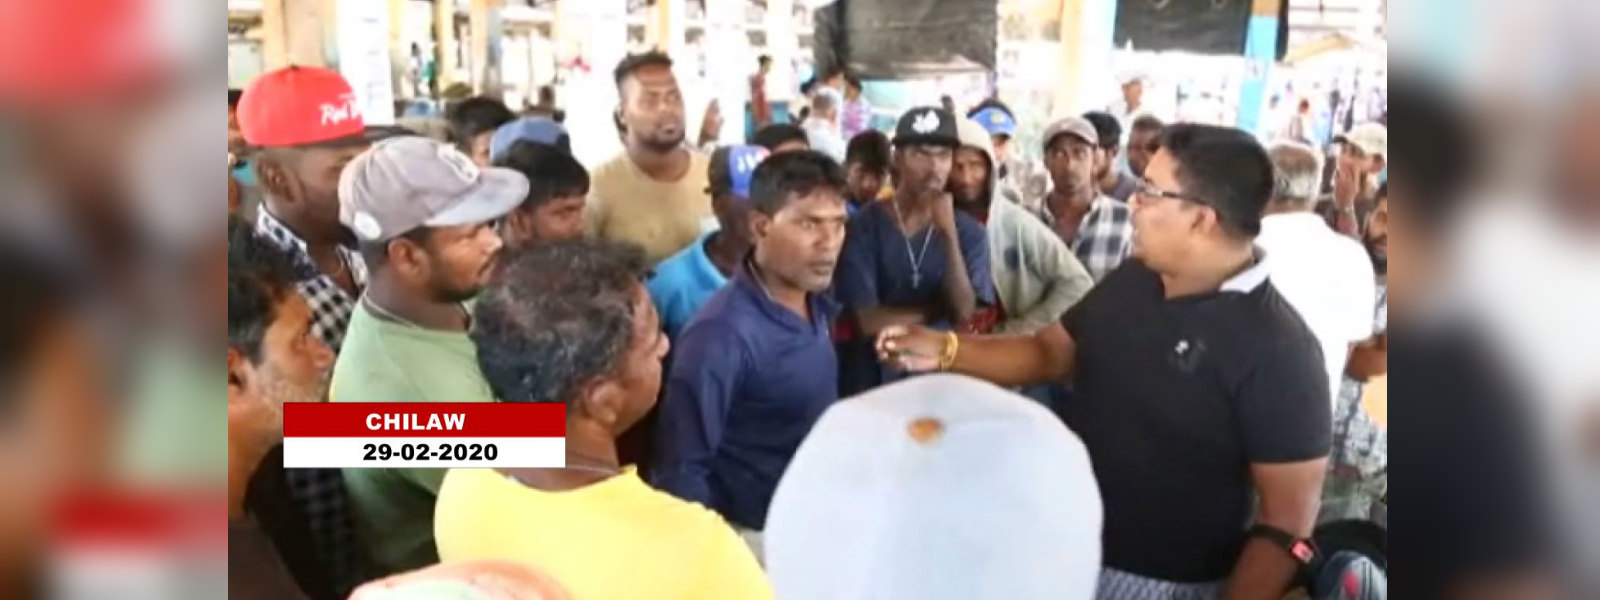 Tense situation at main fish market in Chilaw